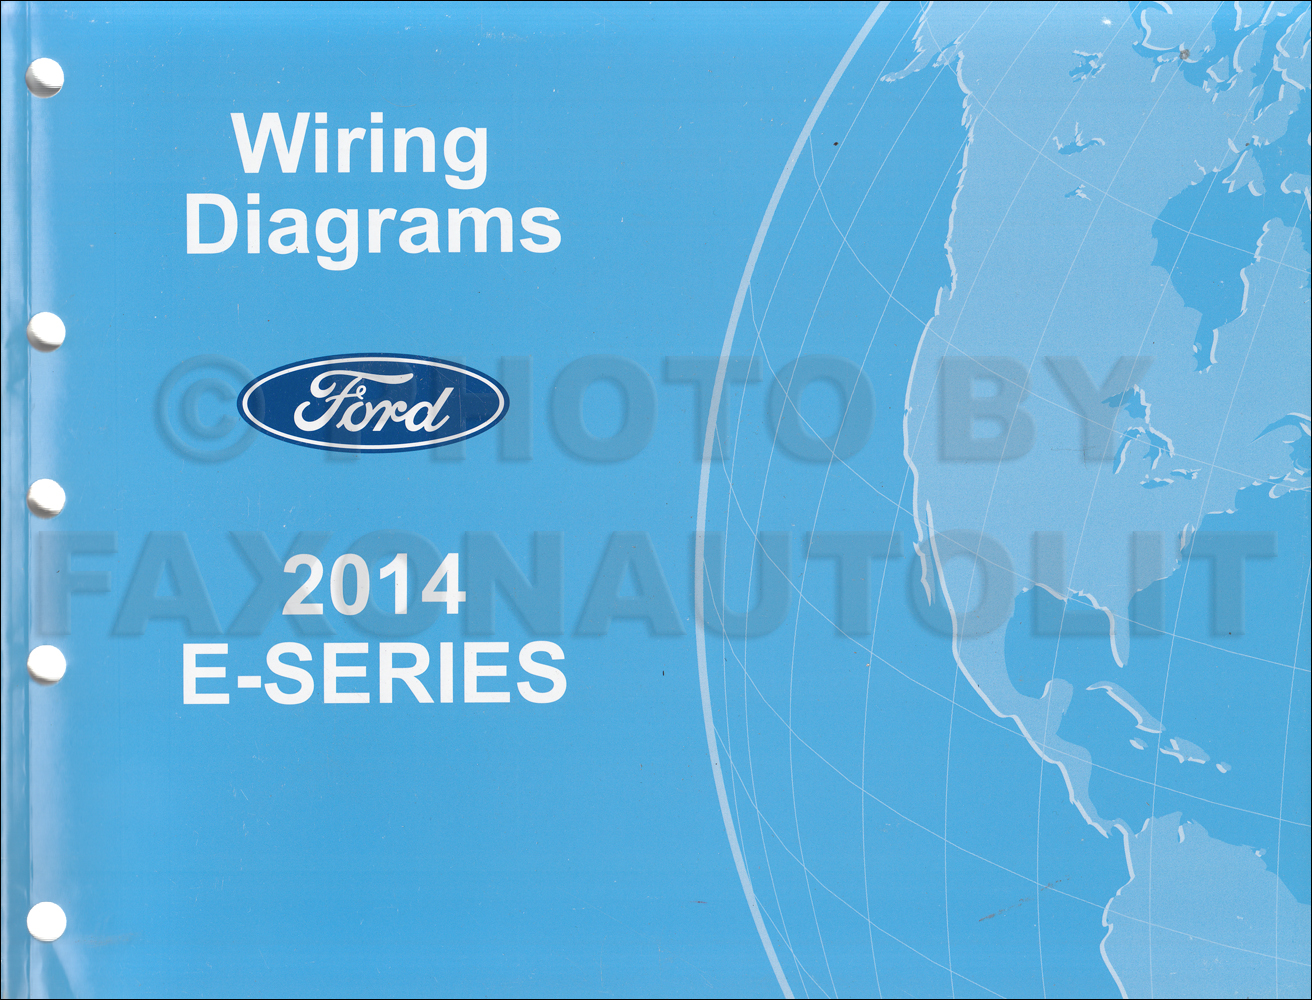 Ford E 350 Wiring Diagrams - 2.xeghaqqt.chrisblacksbio.info •  Ford Econoline Wiring Diagrams on ford f 450 wiring schematic, nissan quest wiring-diagram, ford truck wiring diagrams, ford alternator wiring diagram, ford super duty wiring diagram, ford aerostar wiring diagram, ford flex wiring diagram, ford f-350 4x4 wiring diagrams, bmw x3 wiring-diagram, buick regal wiring-diagram, ford radio wiring diagram, ford e-350 fuse box diagram, jeep patriot wiring-diagram, cadillac deville wiring-diagram, acura tl wiring-diagram, subaru outback wiring-diagram, ford electrical diagram, 2004 chrysler sebring wiring-diagram, ford 7 pin trailer wiring diagram, ford e-350 parts diagram,